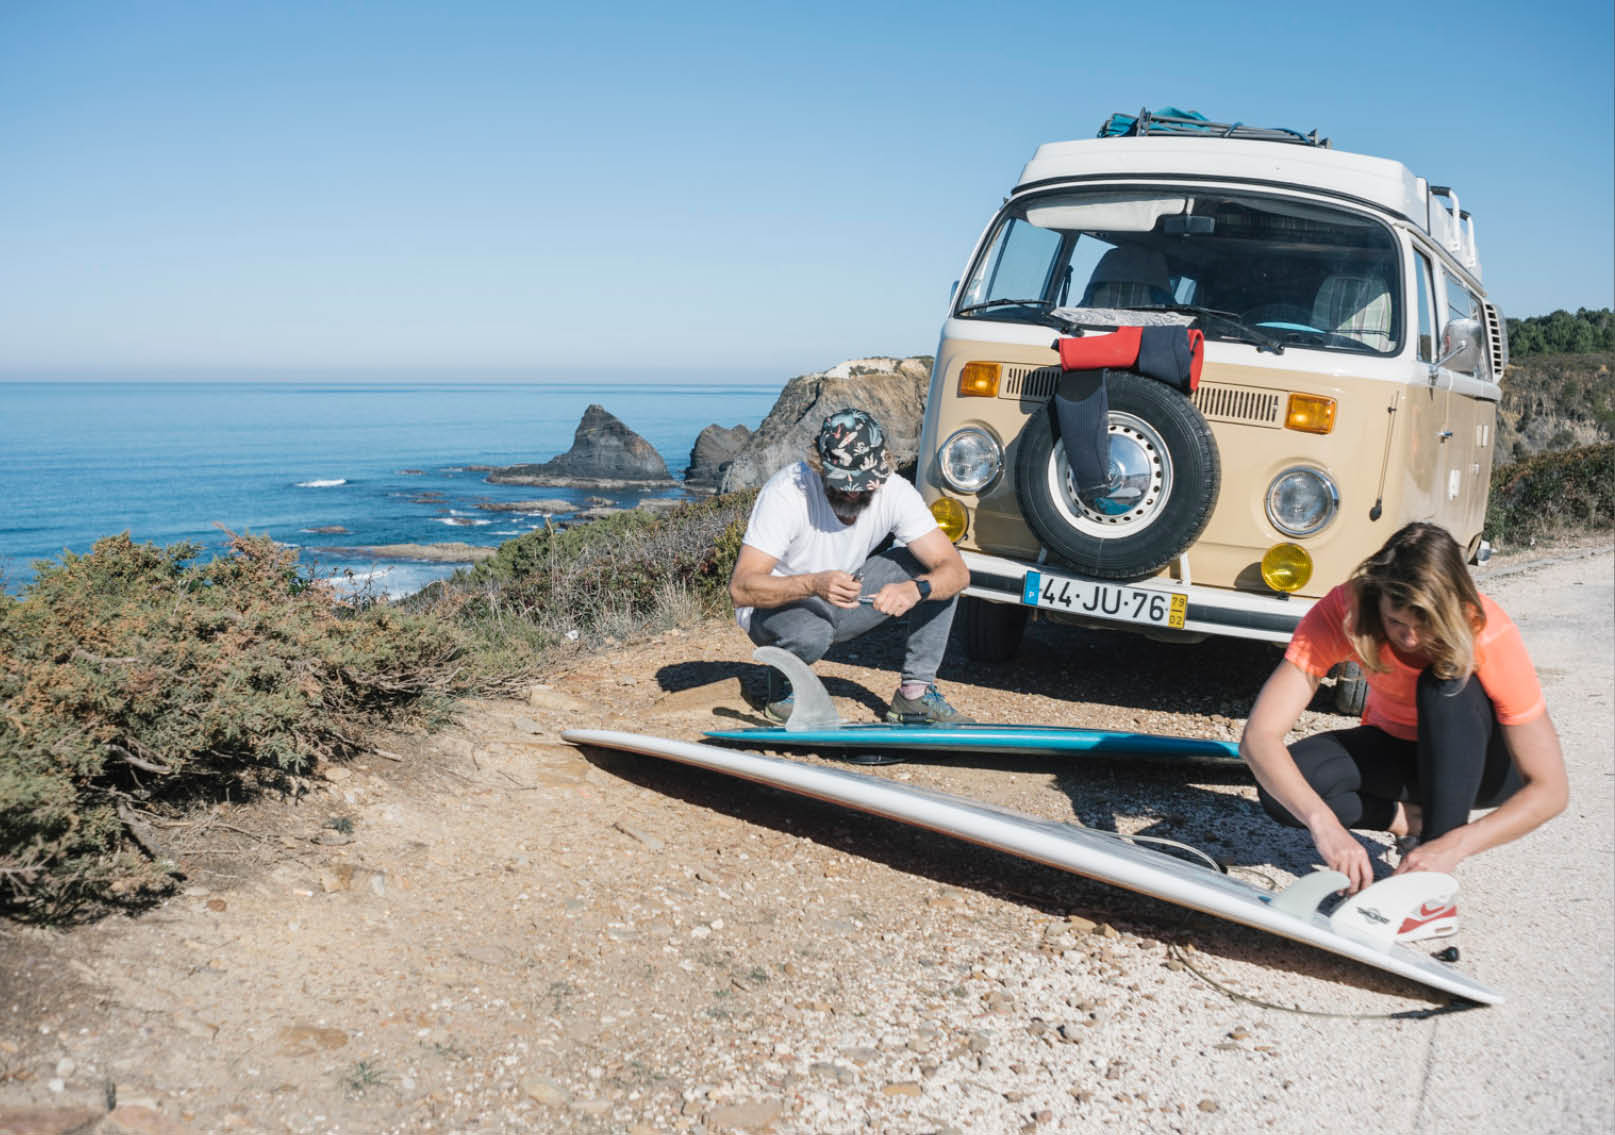 roadtrip_portugal_ydwer_surfen_post3